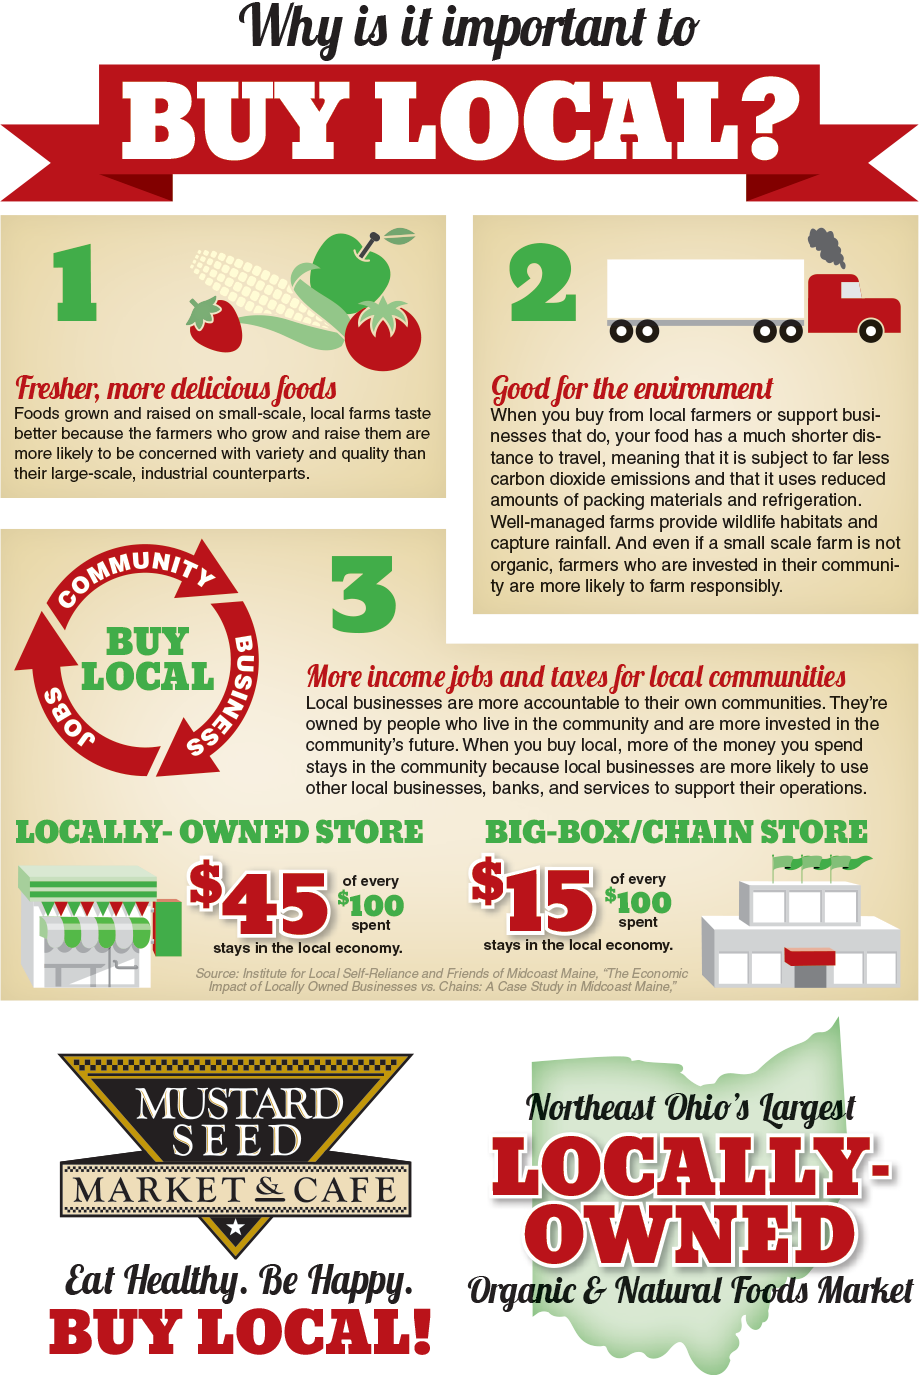 Buying local is the best way to help your local economy